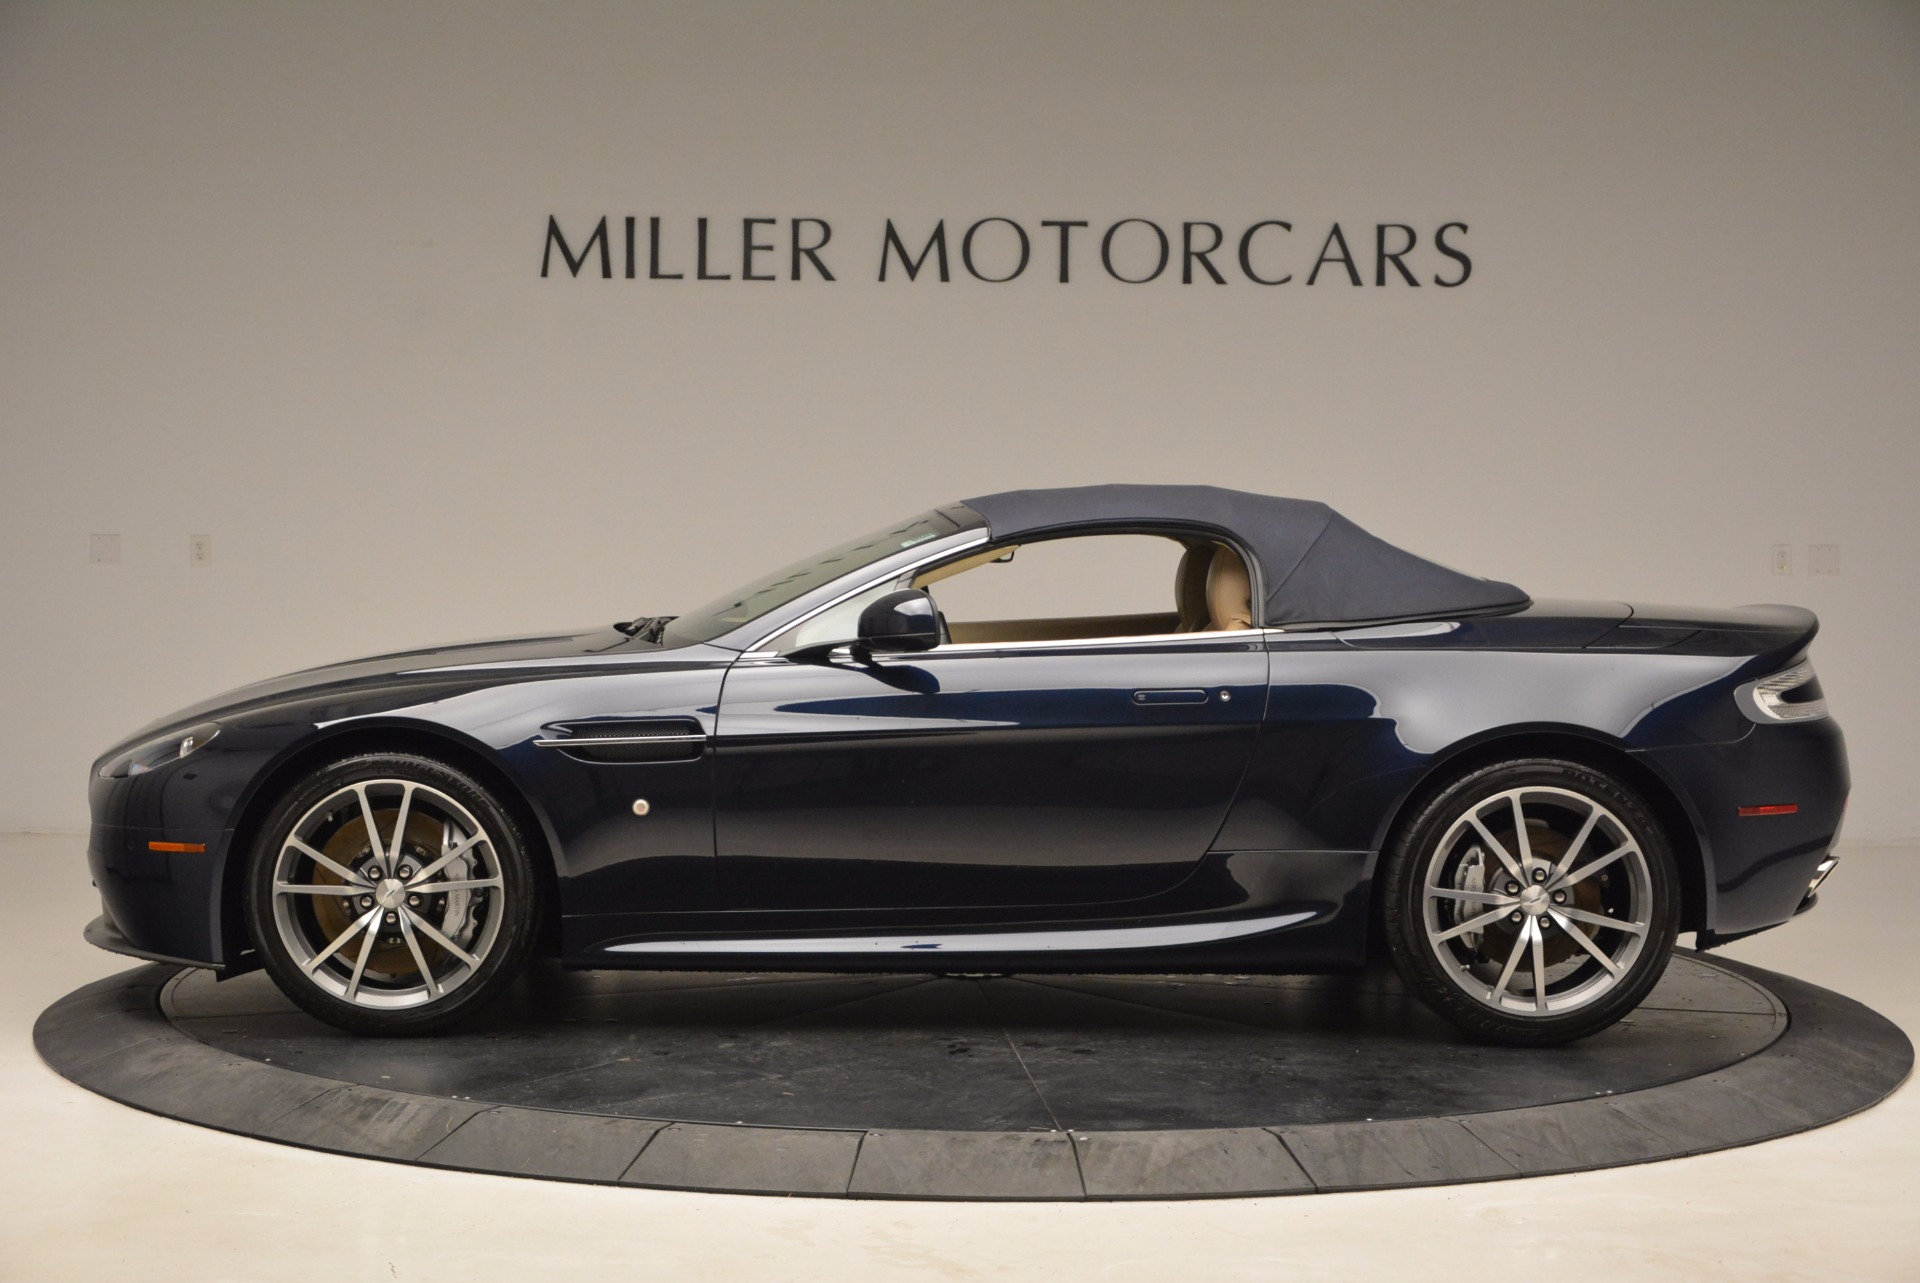 Used 2014 Aston Martin V8 Vantage Roadster For Sale In Greenwich, CT. Alfa Romeo of Greenwich, 7282 1623_p15